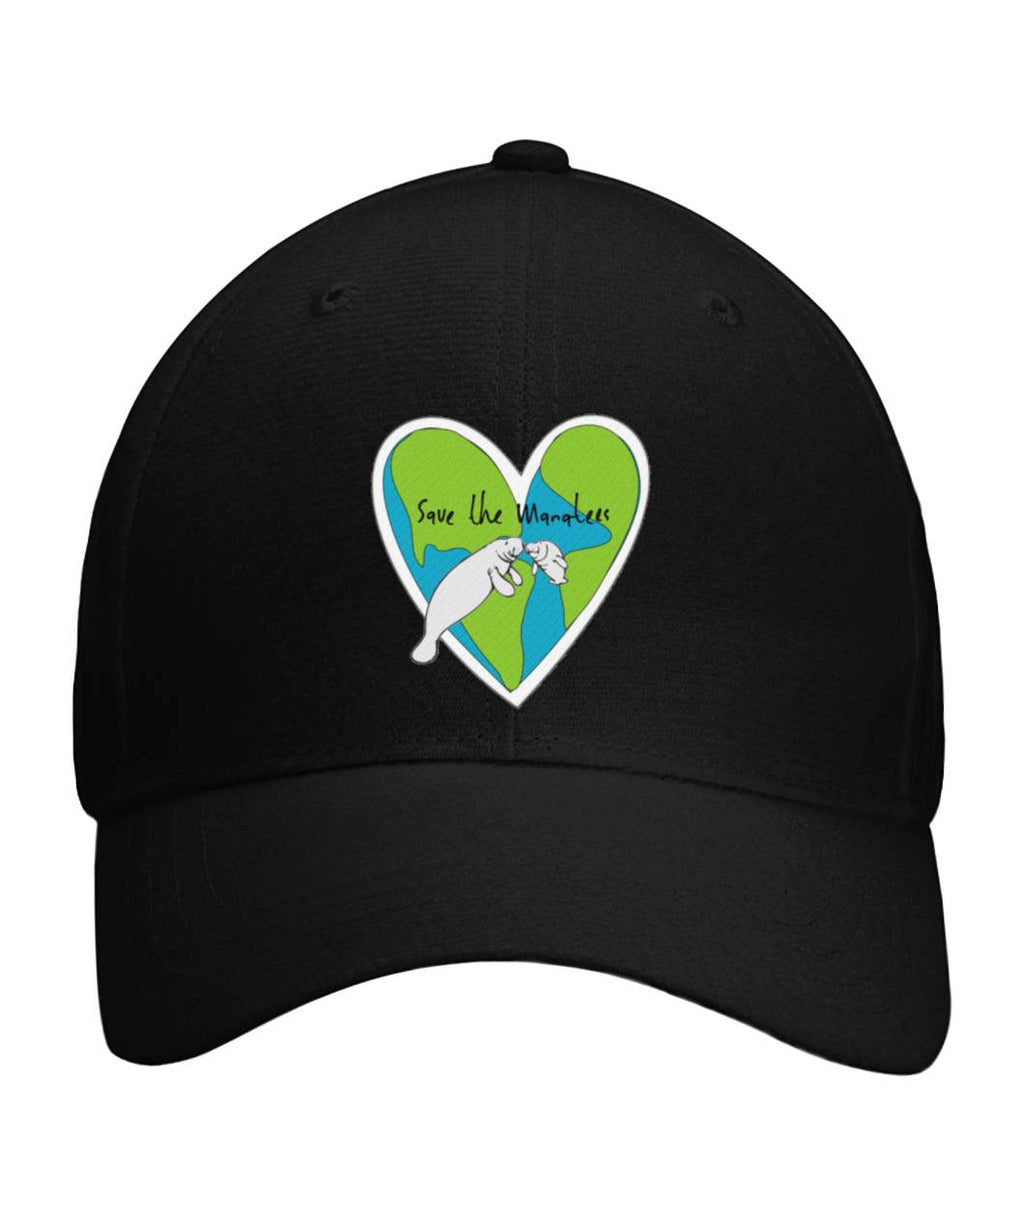 Save the Manatees Baseball Cap - Connected Clothing Company